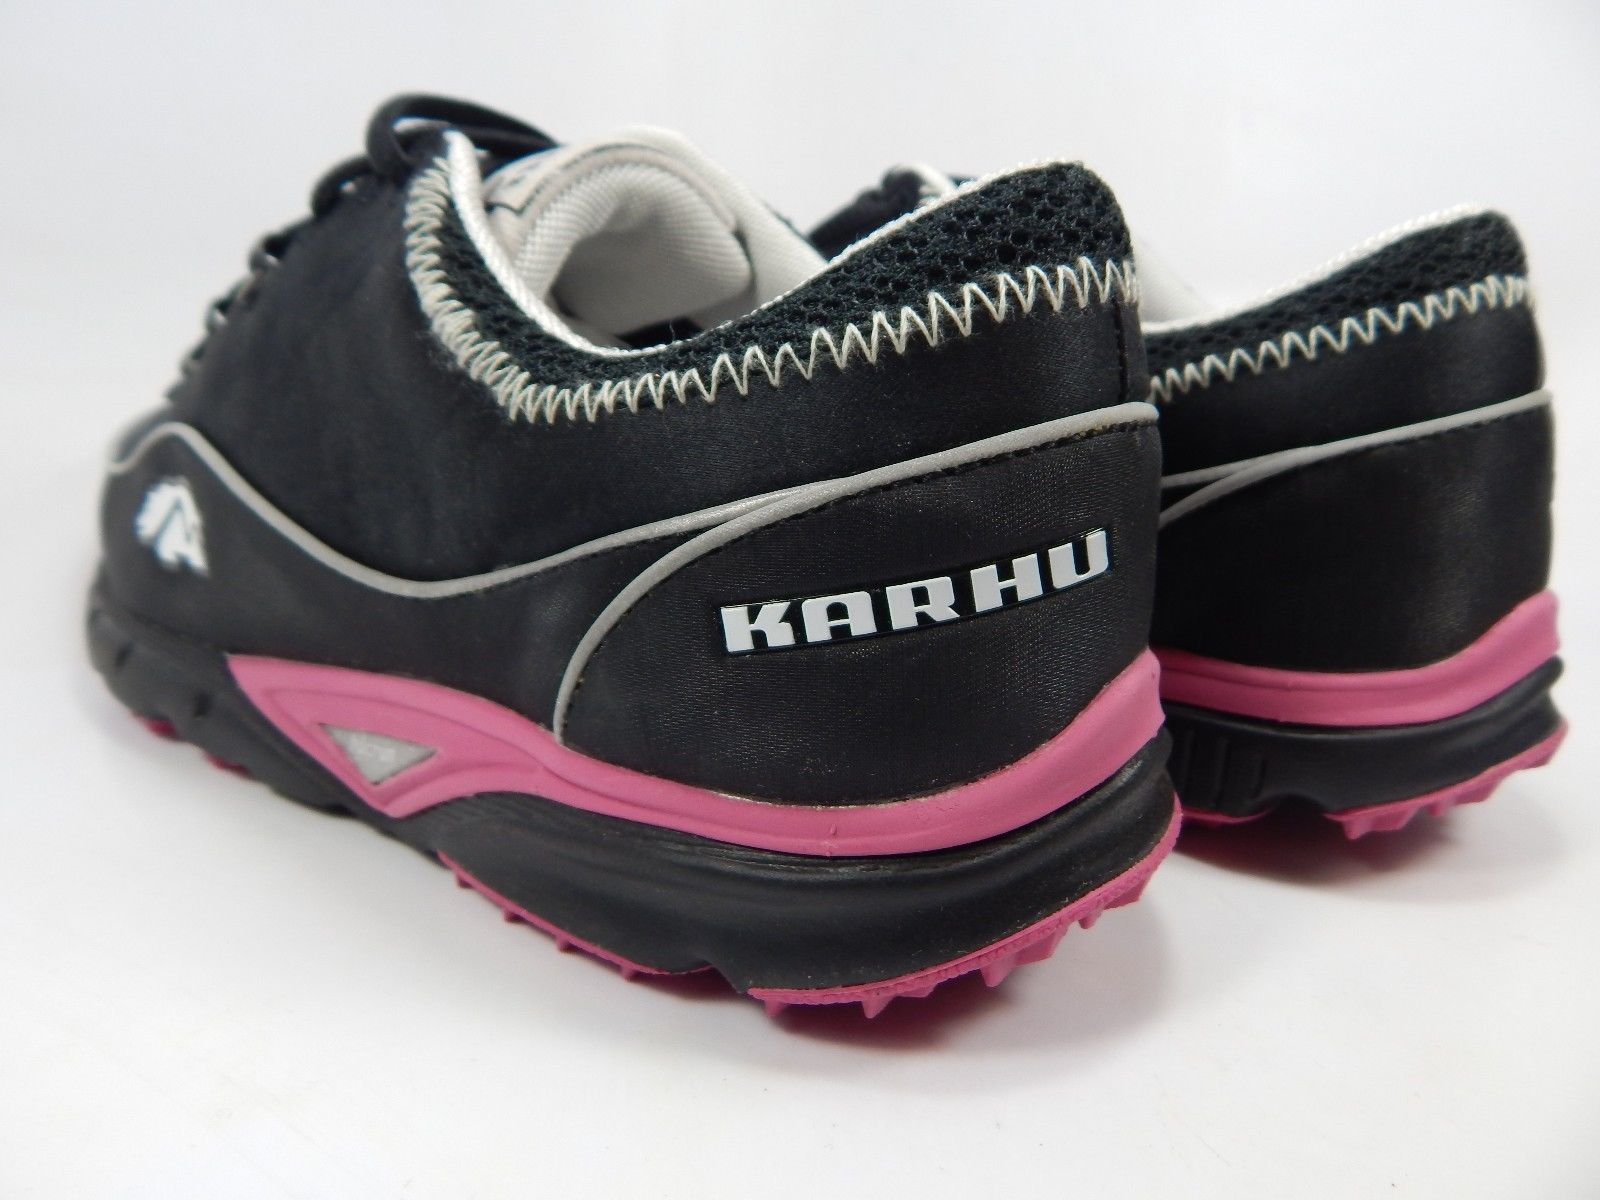 Karhu Flow Trail WP Fulcrum Women's Running Shoes Size US 7 M (B) EU 38 Black